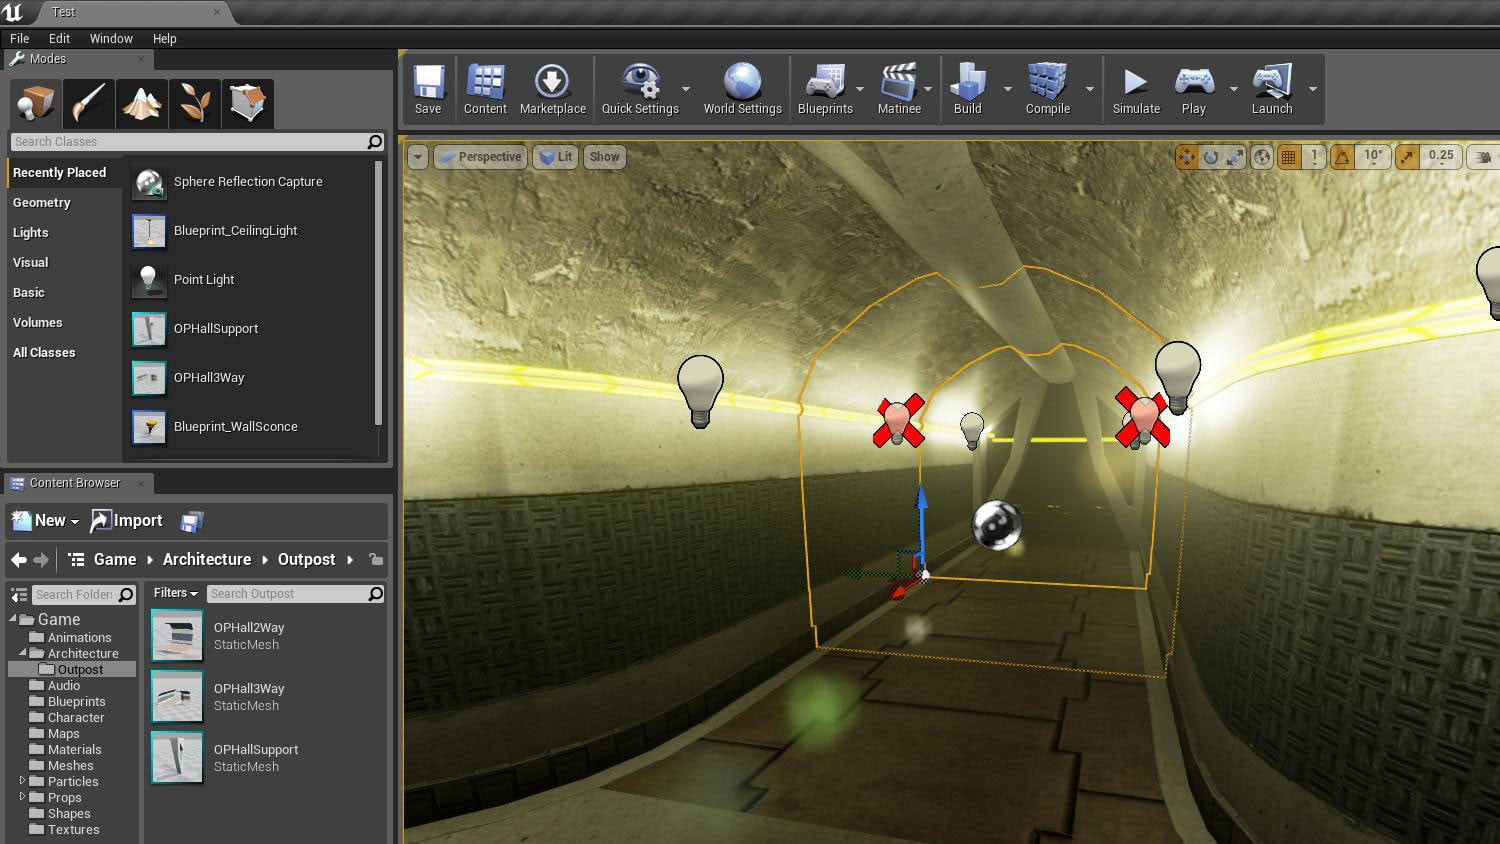 Microsoft Releases Unreal Engine 4 Fork with UWP Support